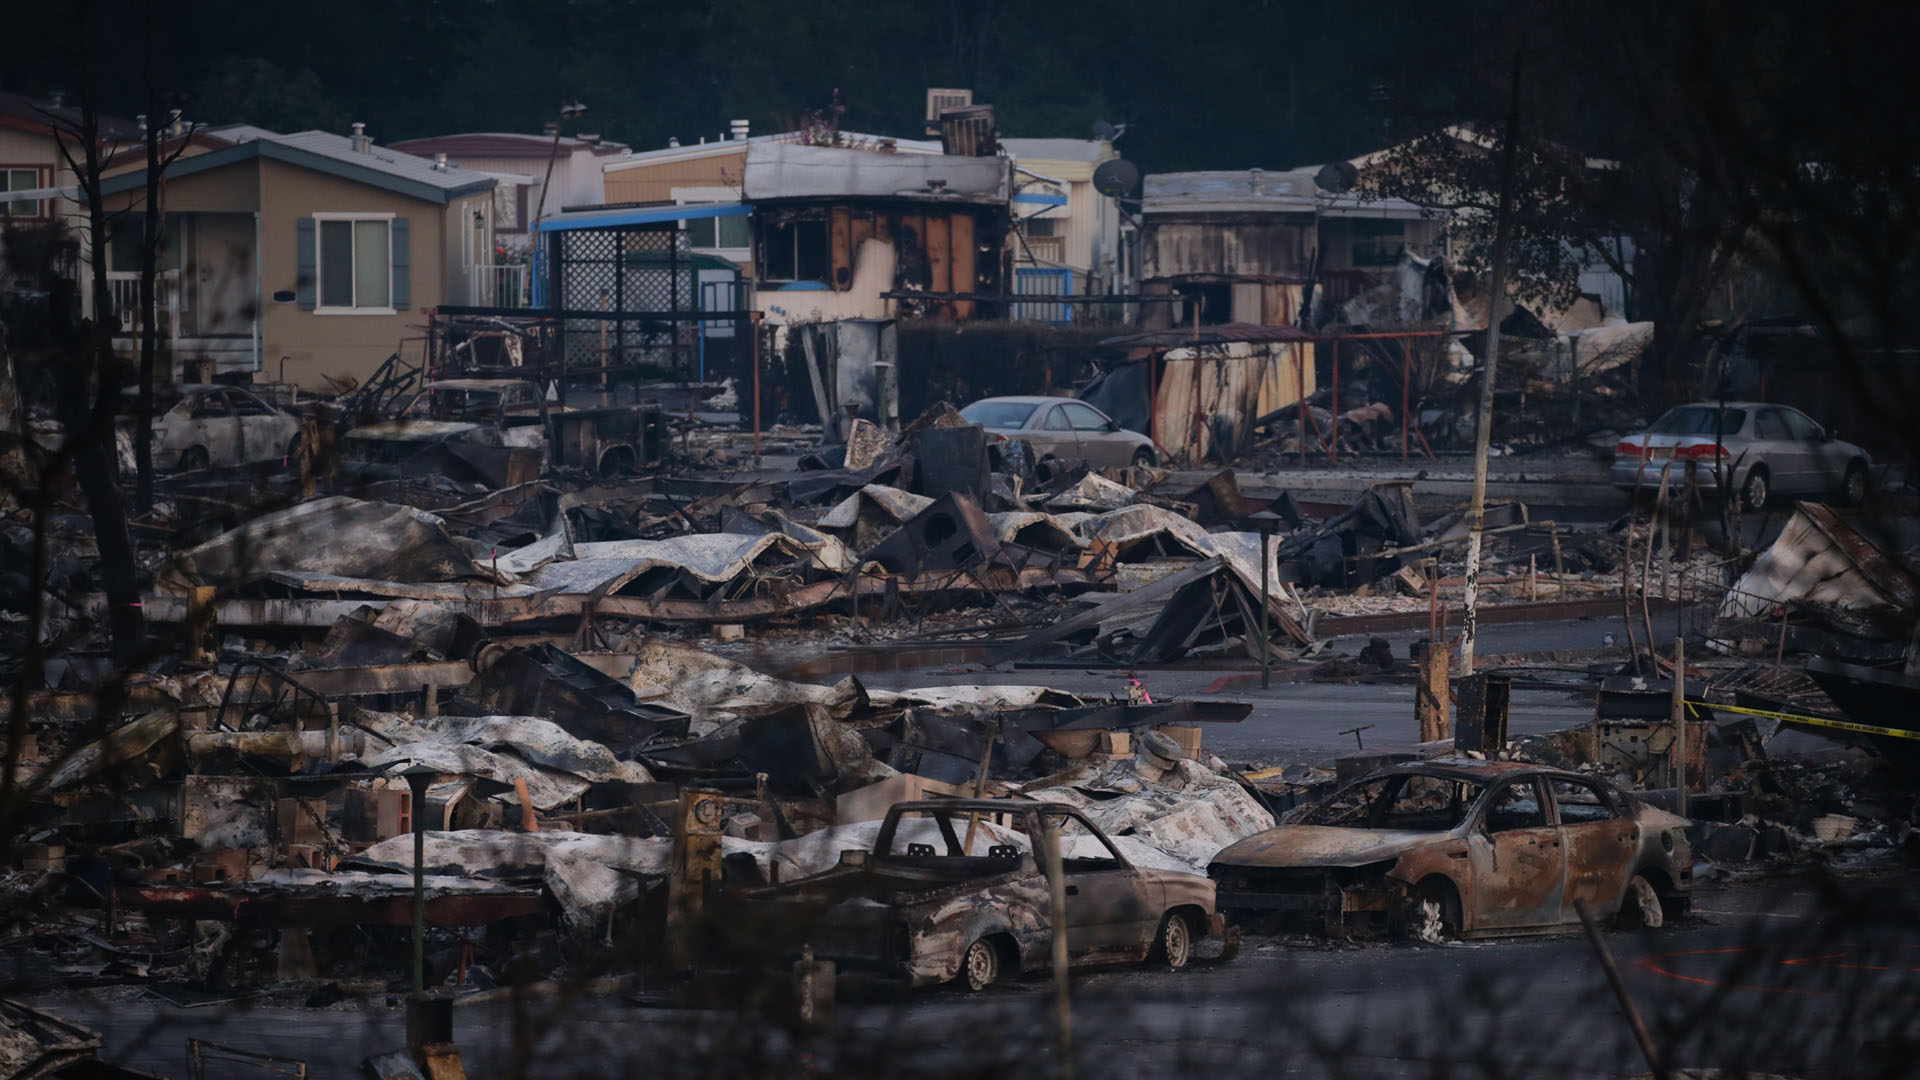 California wildfires, Santa Rosa, mobile home park burned down25911528-159532